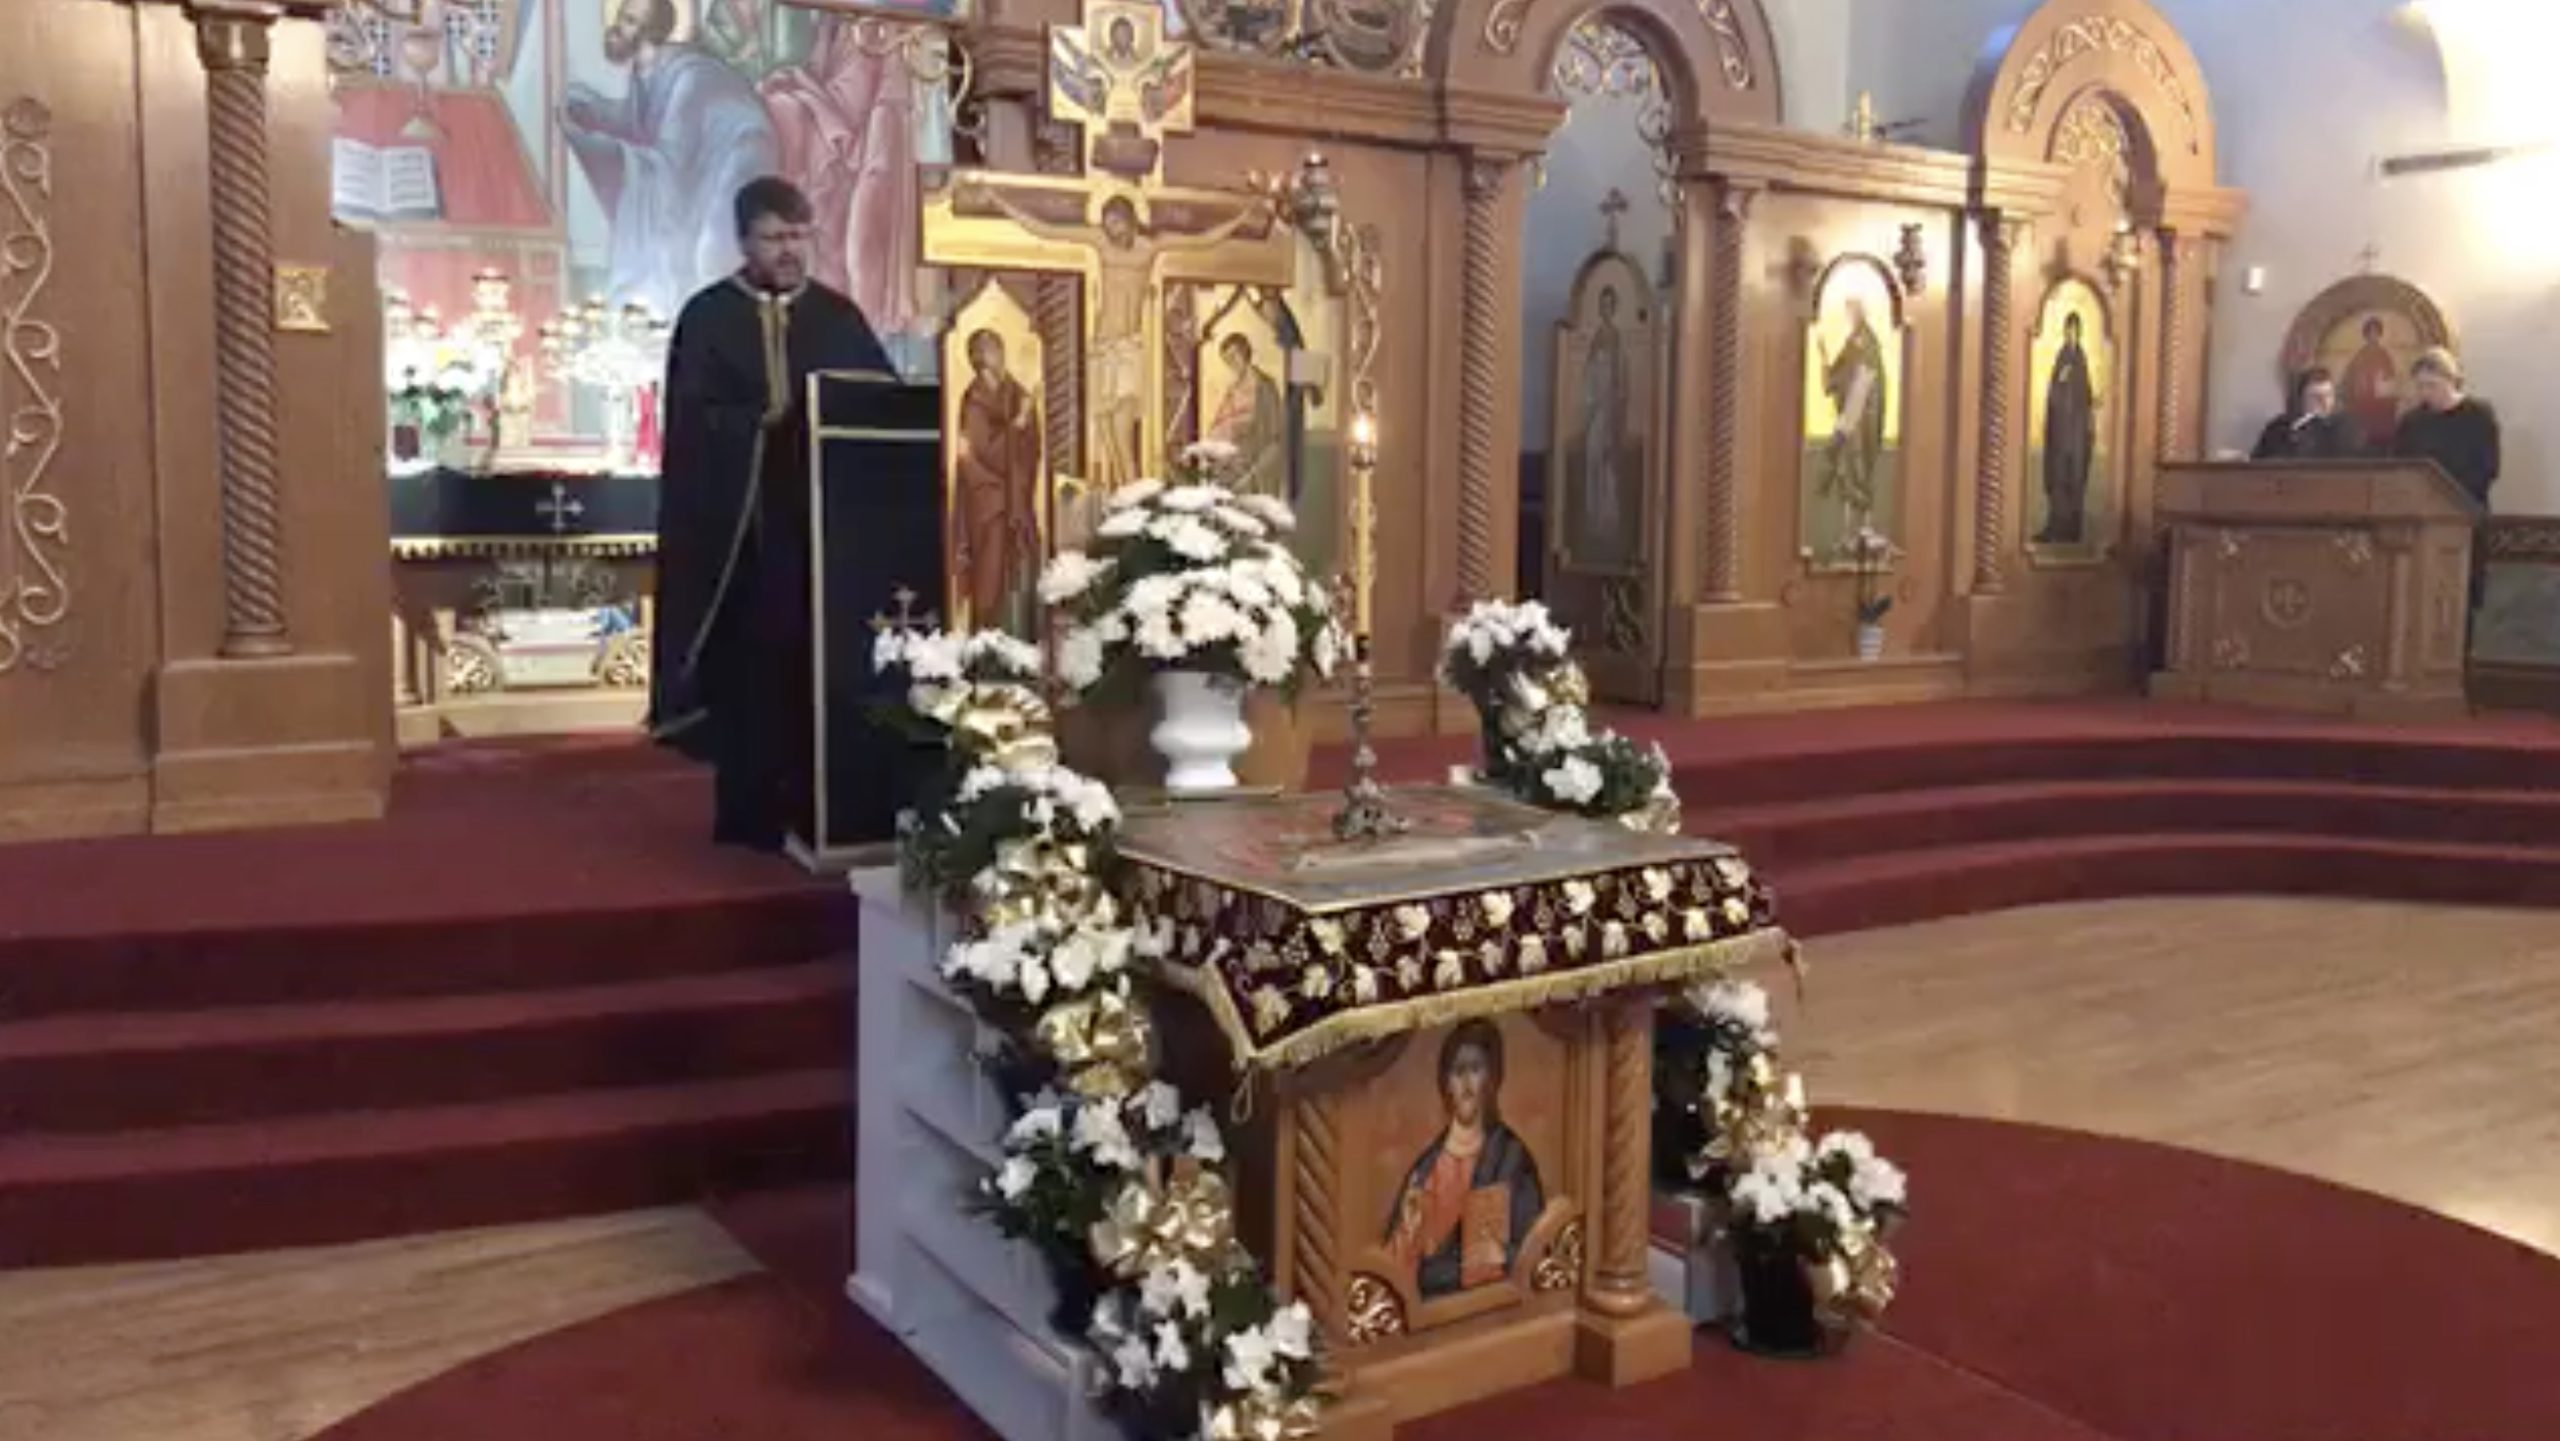 Vespers with laying of Holy Shroud – Friday, April 30 – 6:00 p.m. live streaming